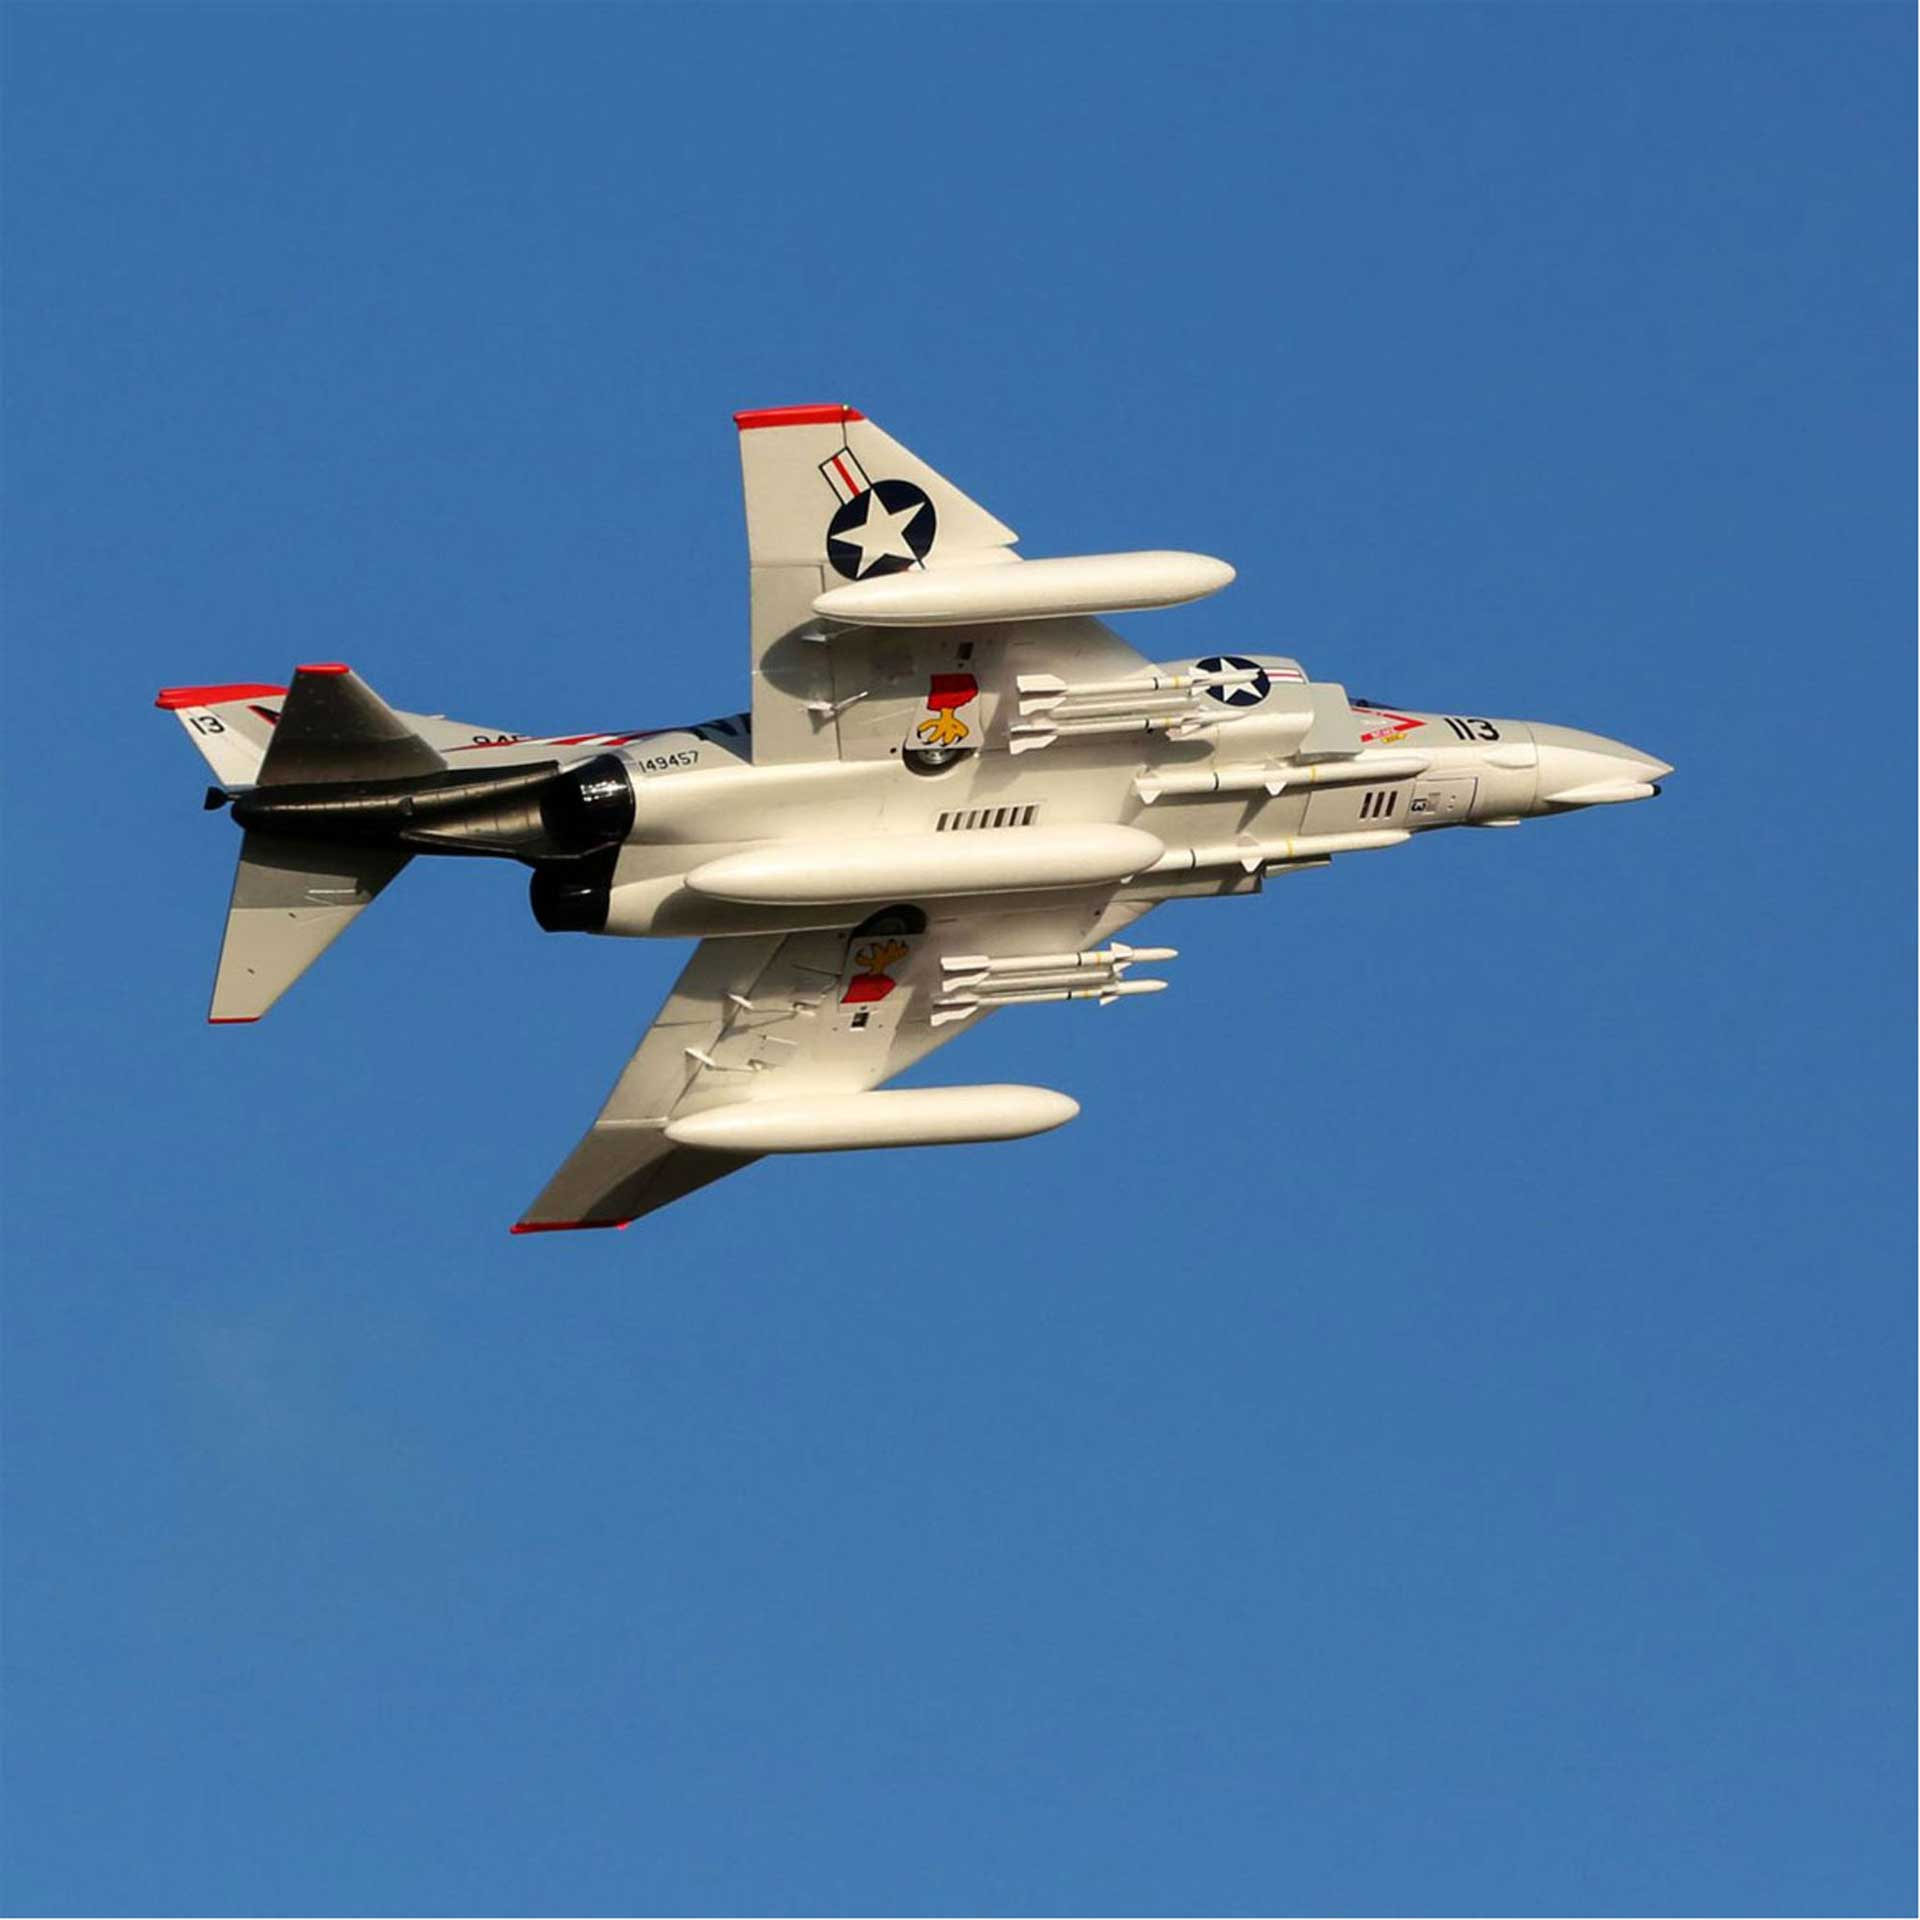 E-FLITE F-4 PHANTOM II 80MM EDF BNF BASIC WITH AS3X AND SAFE SELECT